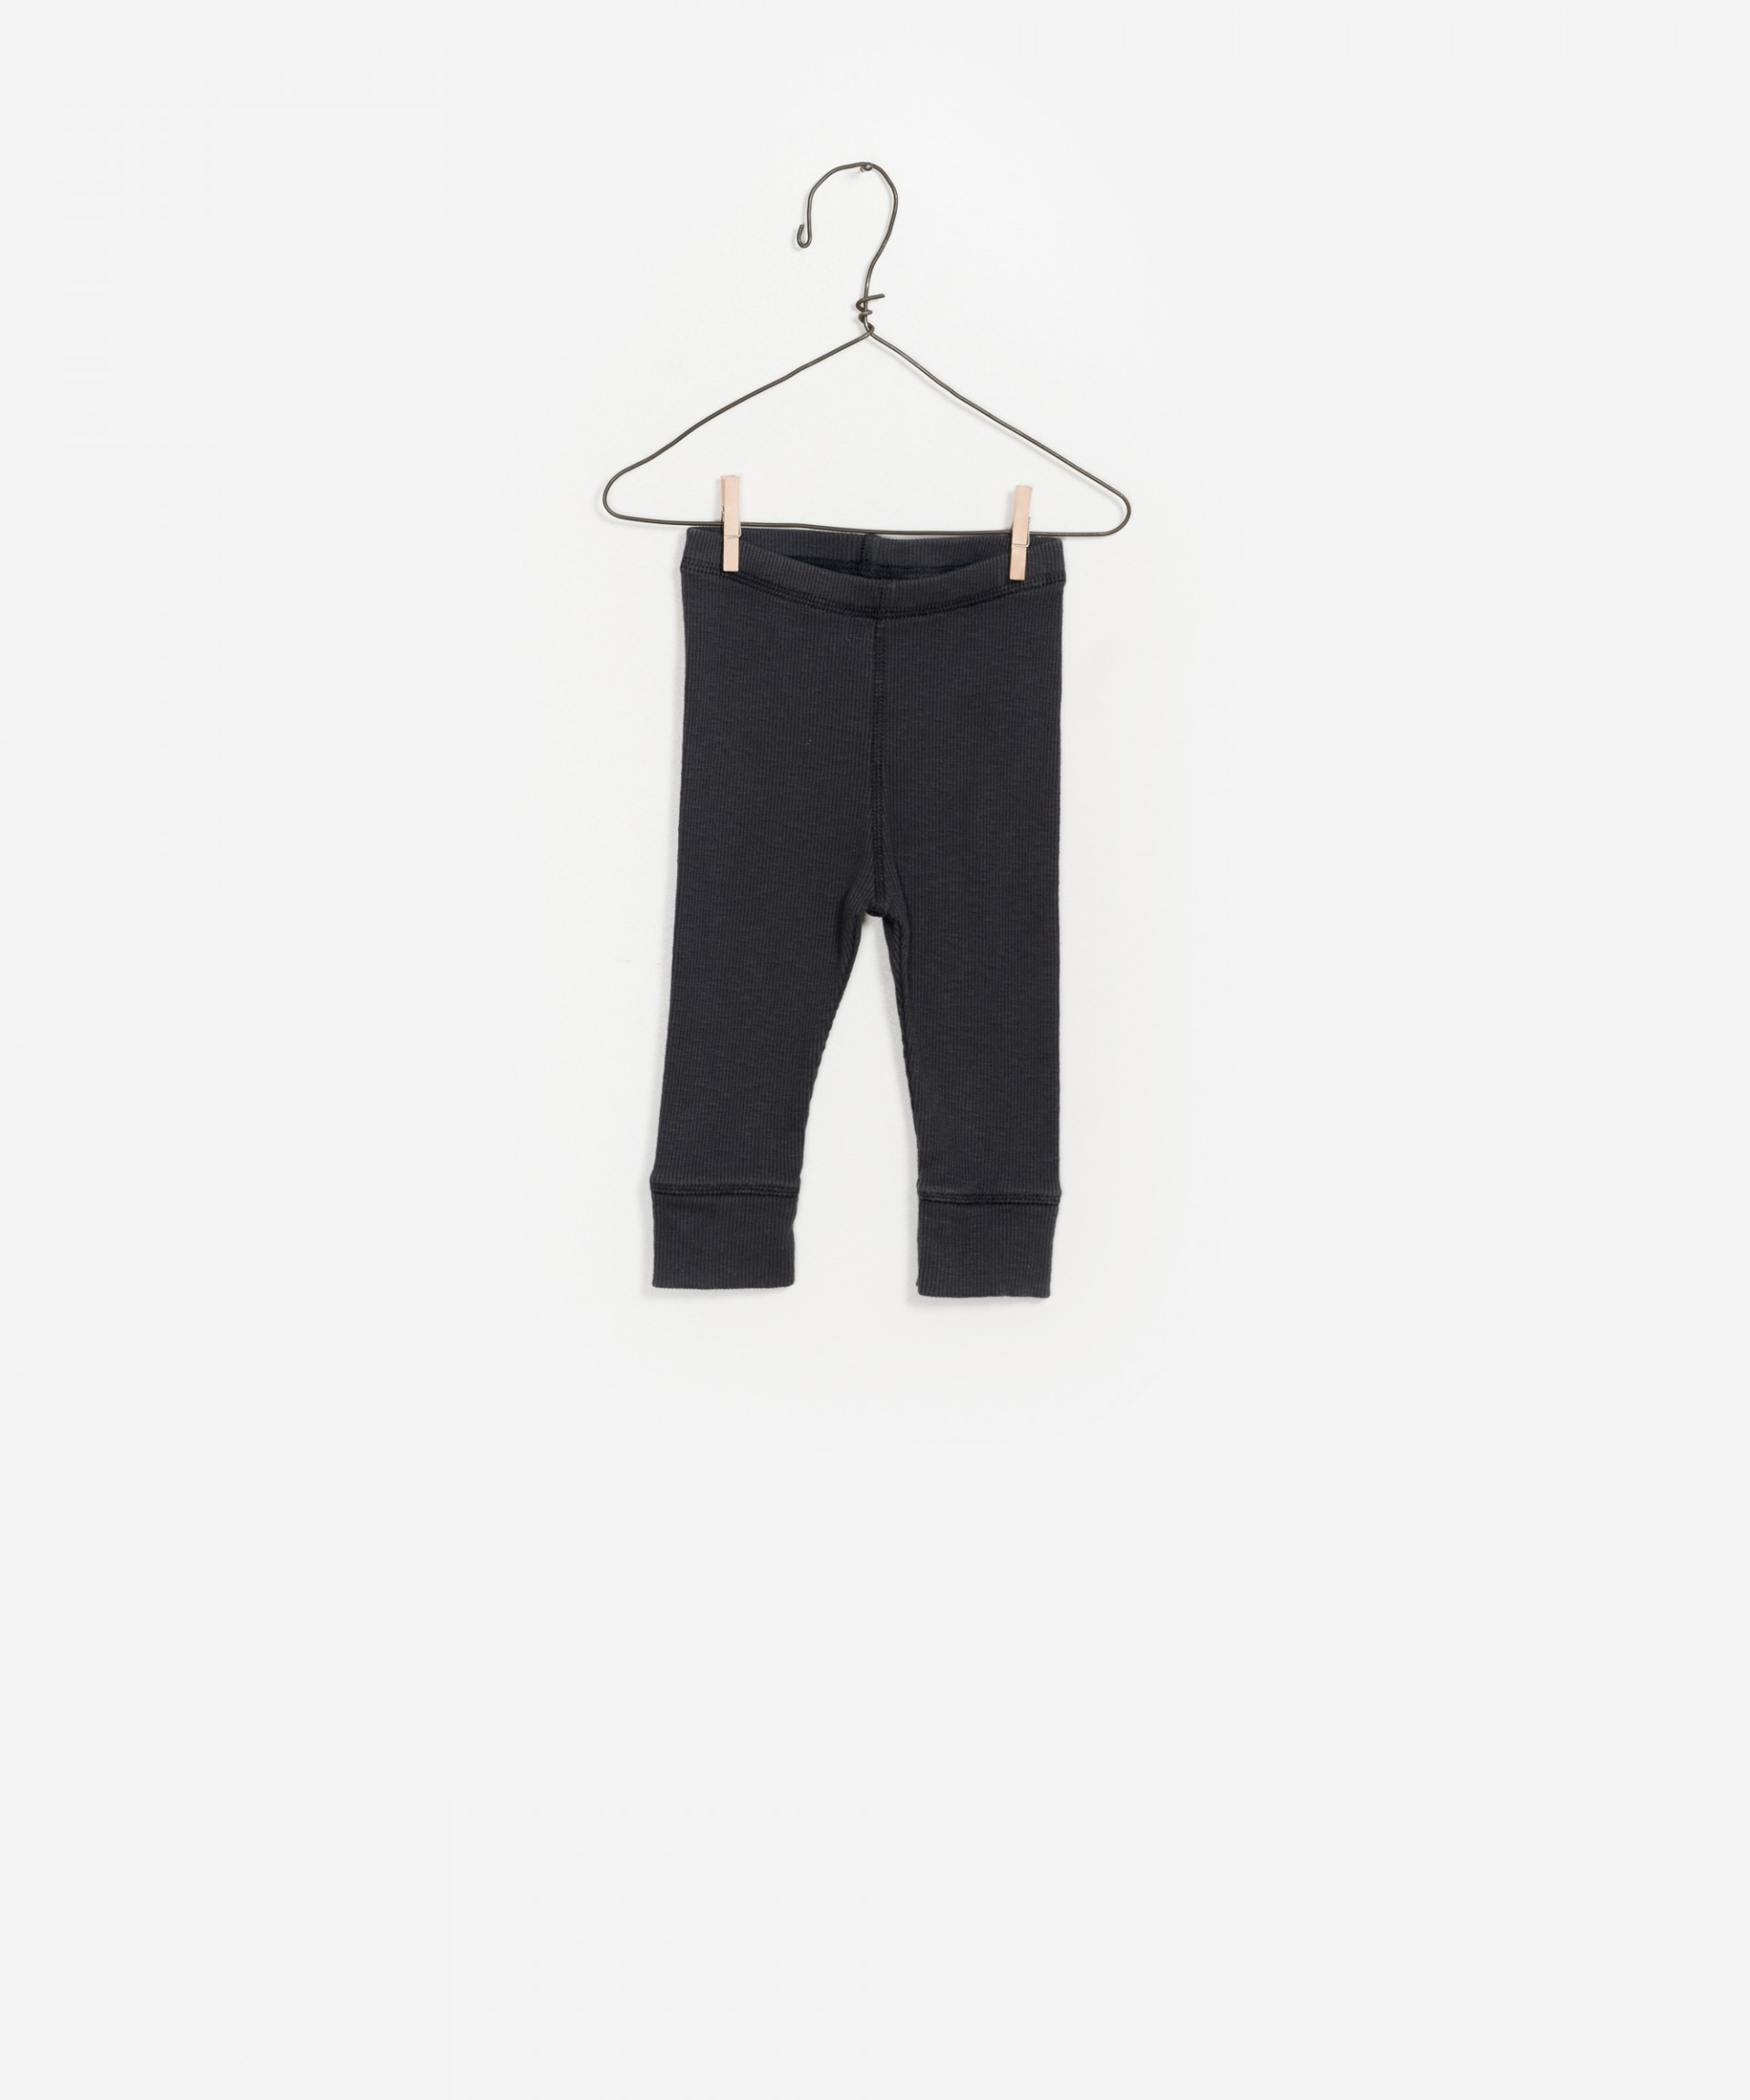 Basic Organic Cotton Leggings